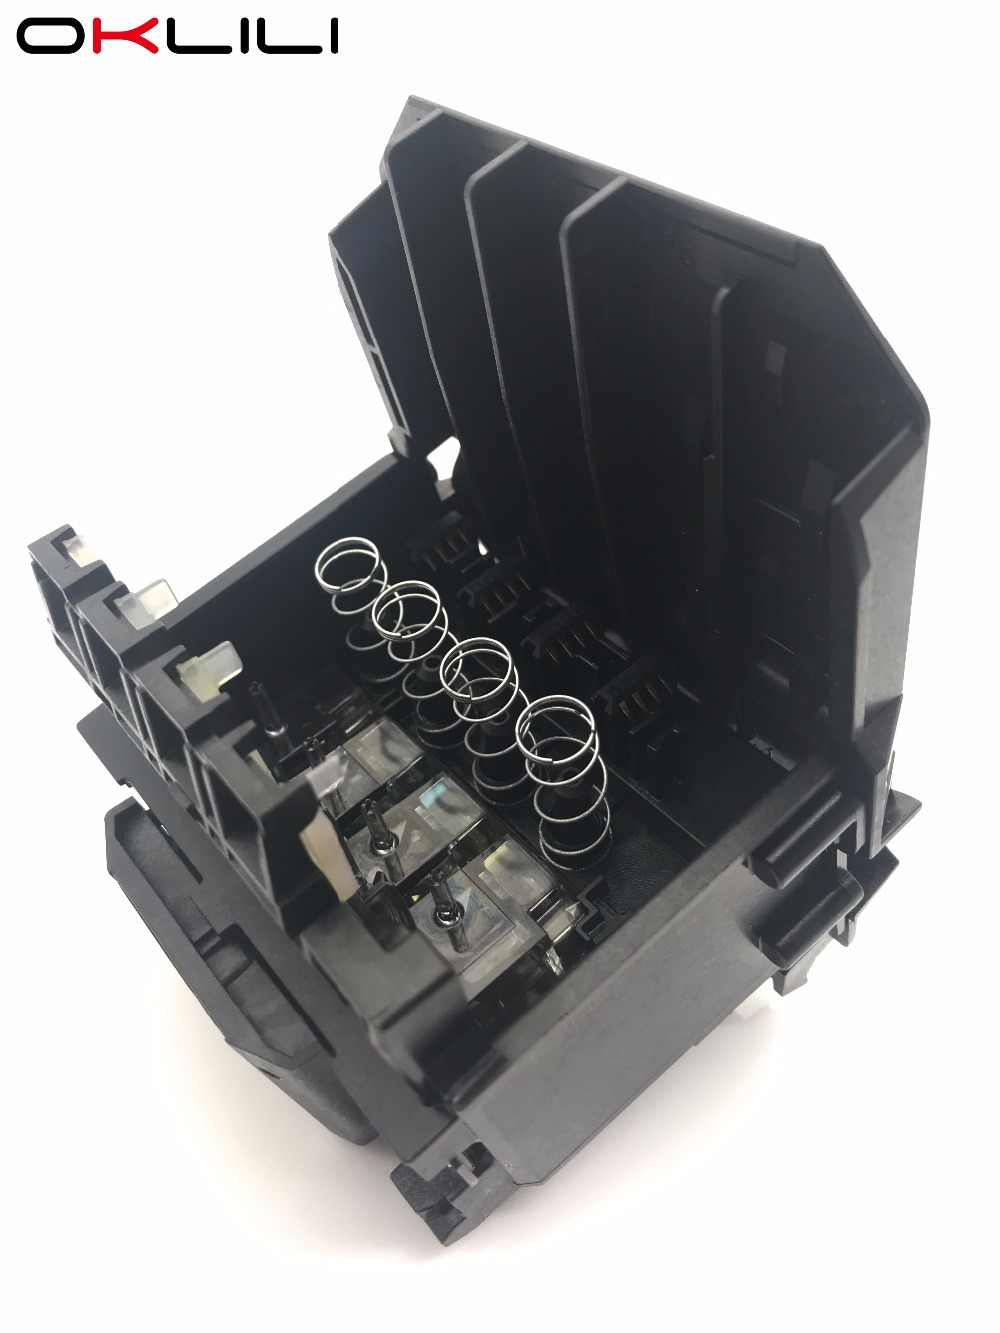 1X CB863-80002A 932 933 932XL 933XL Printhead Printer Print head for HP Officejet 6060 6060e 6100 6100e 6600 6700 7110 7600 7610